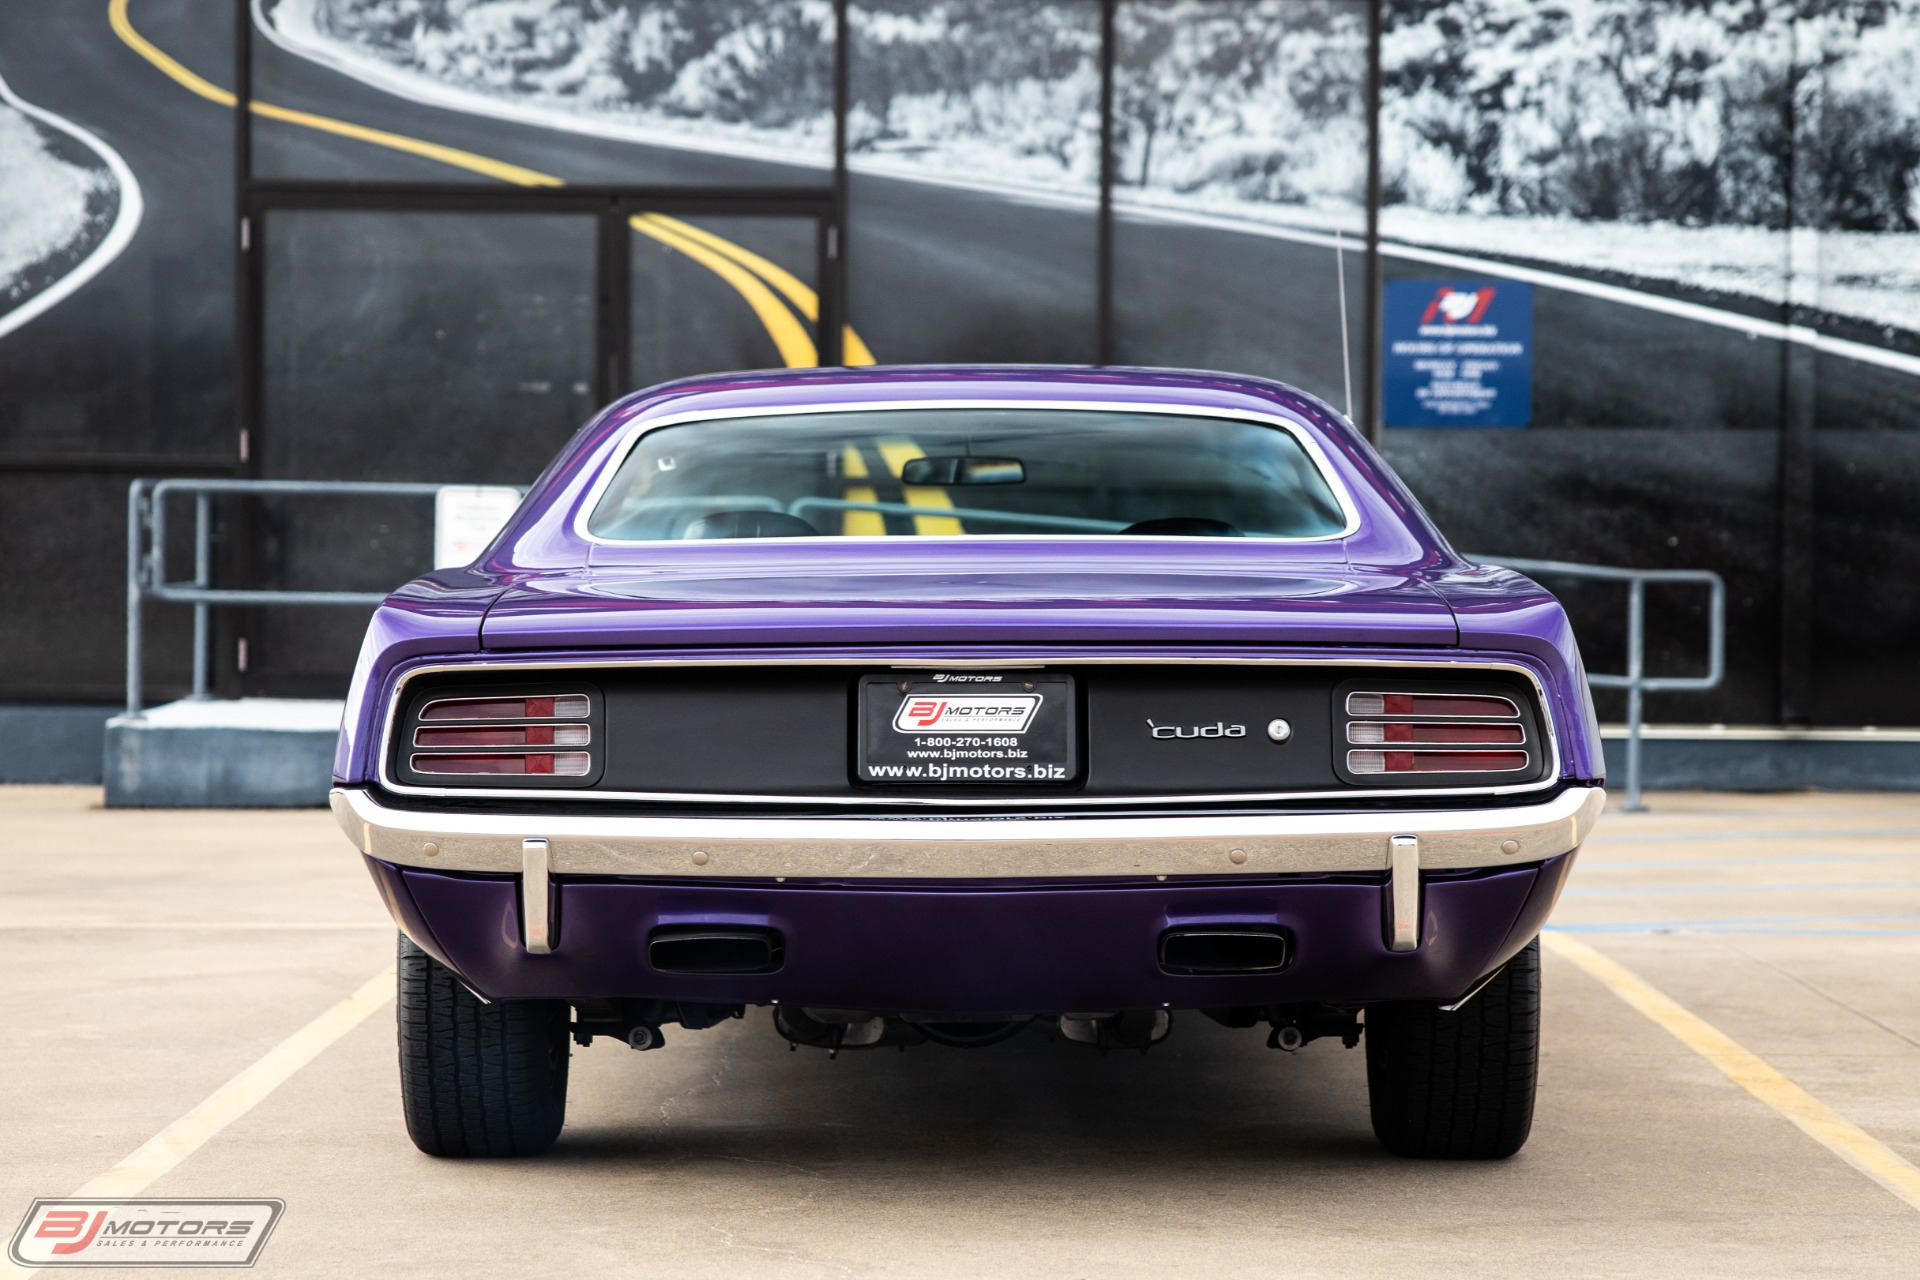 Used 1970 Plymouth Barracuda 440 Six Pack in Plum Crazy